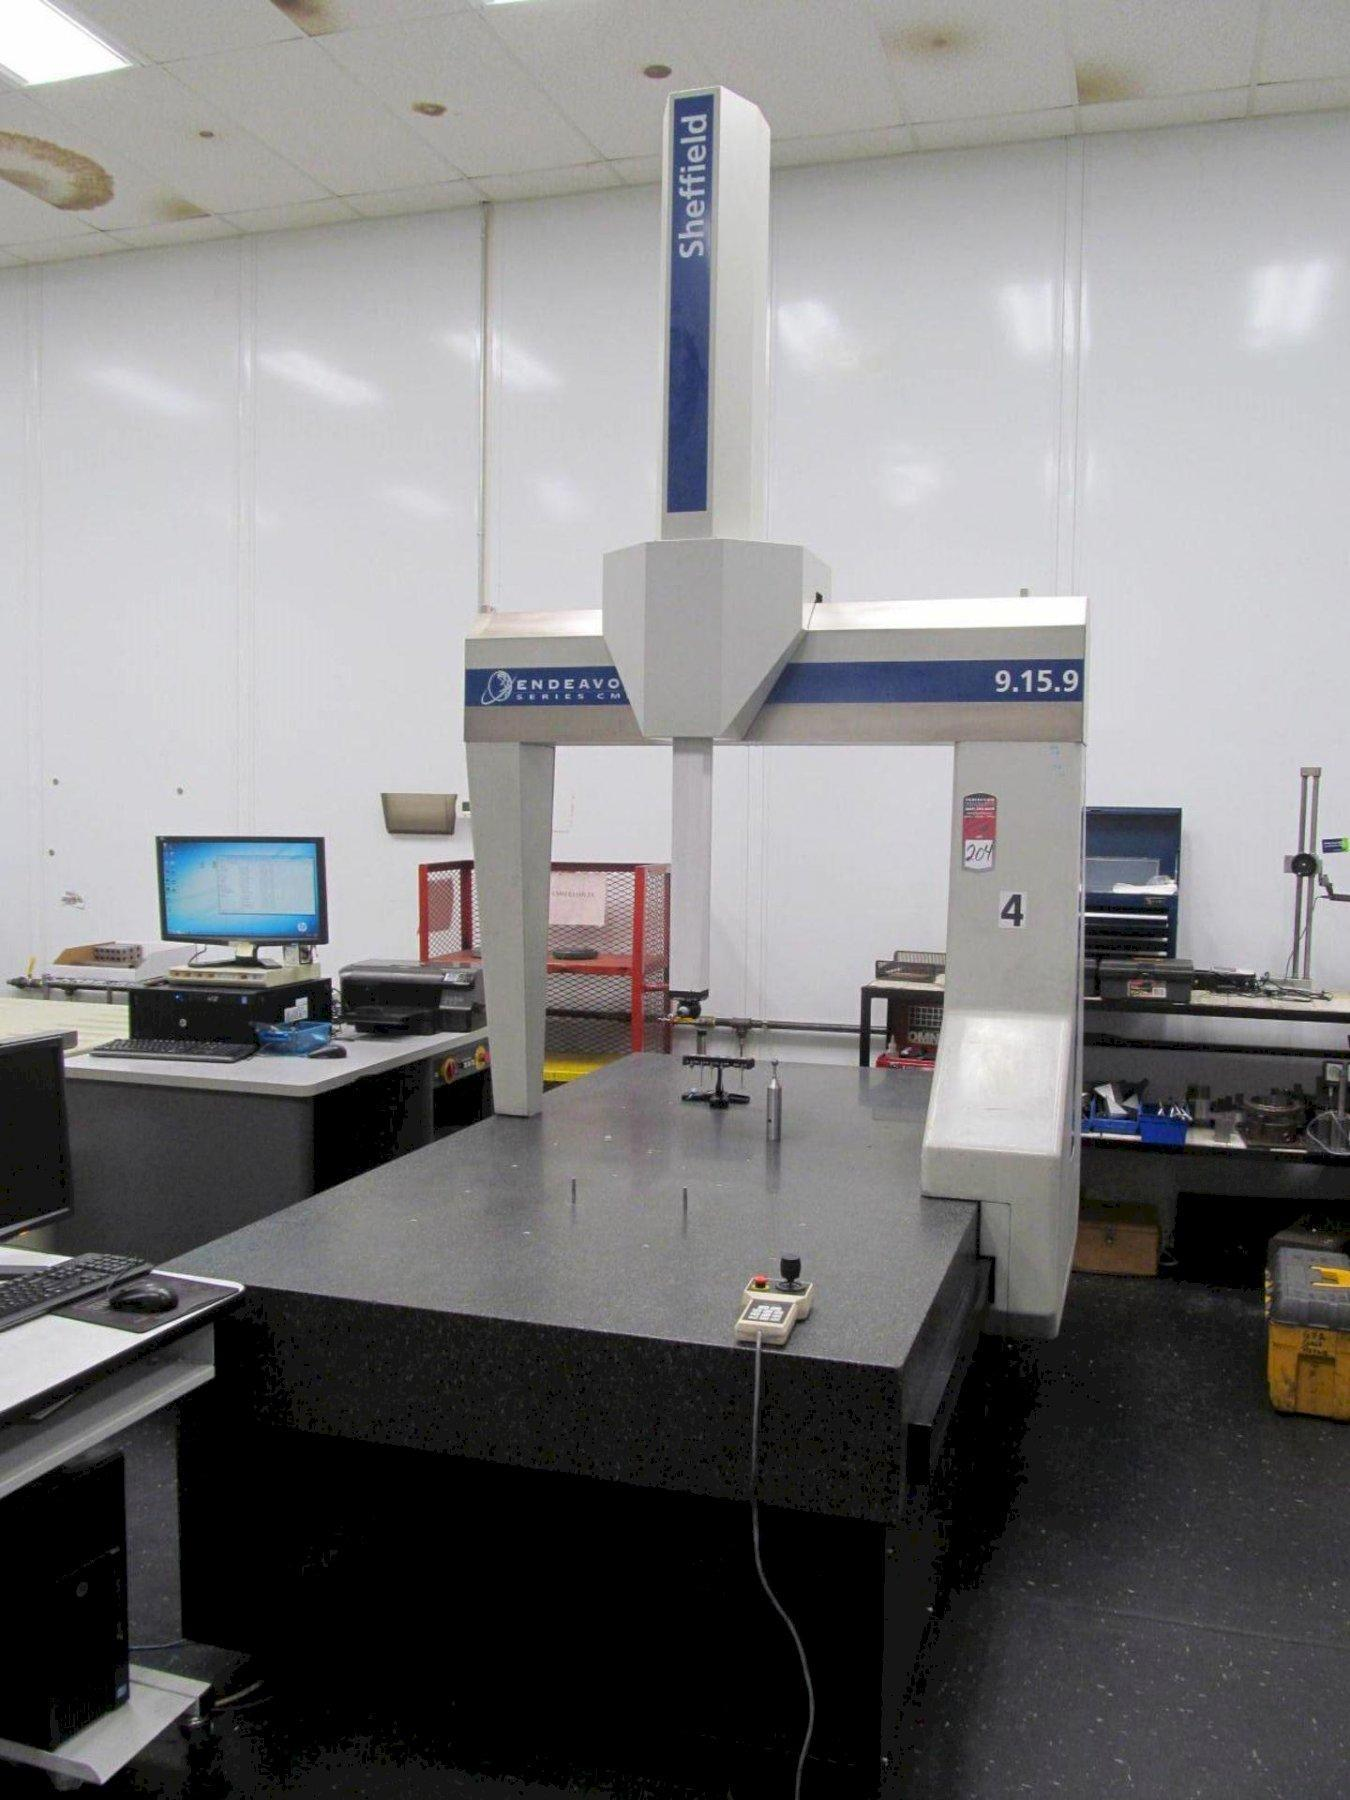 Sheffield Endeavor 9/15/9 Coordinate Measuring Machine (CMM)